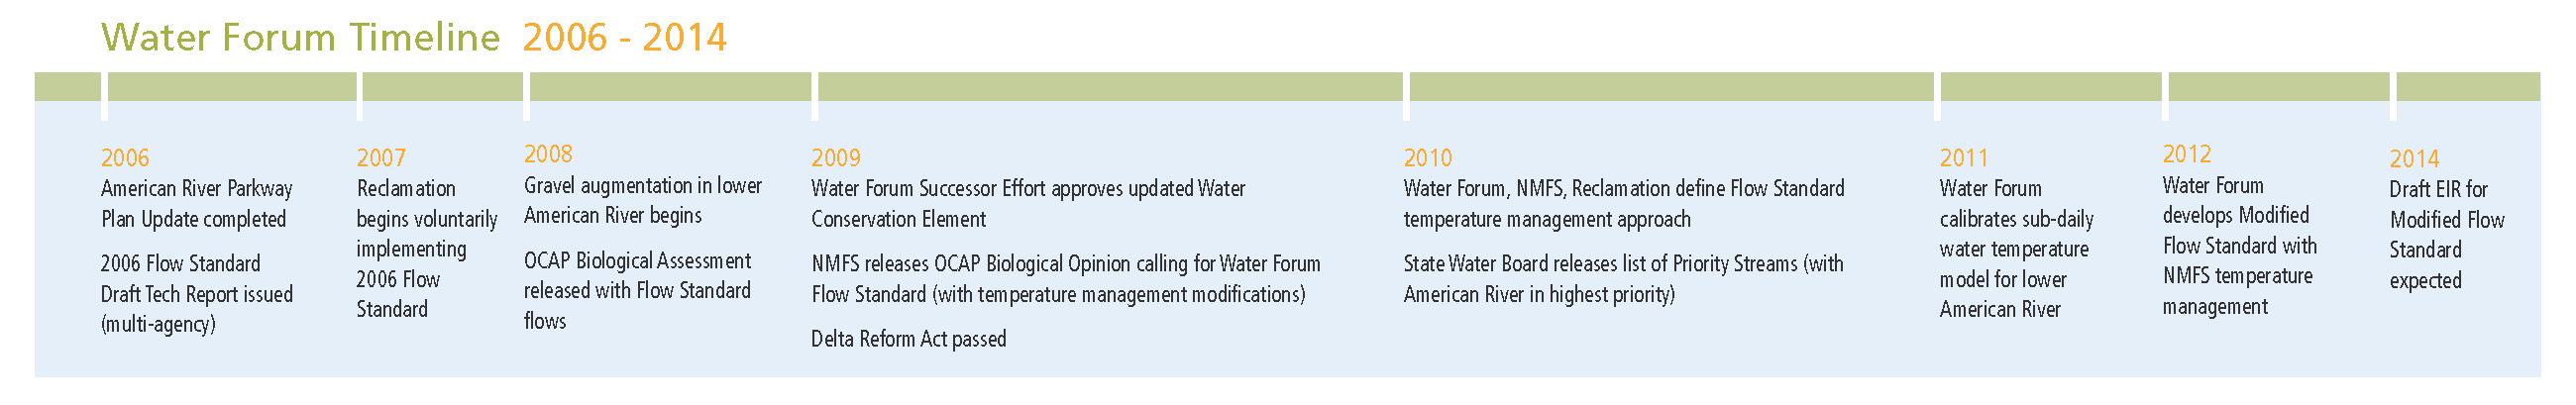 WaterForum timeline_Page_2